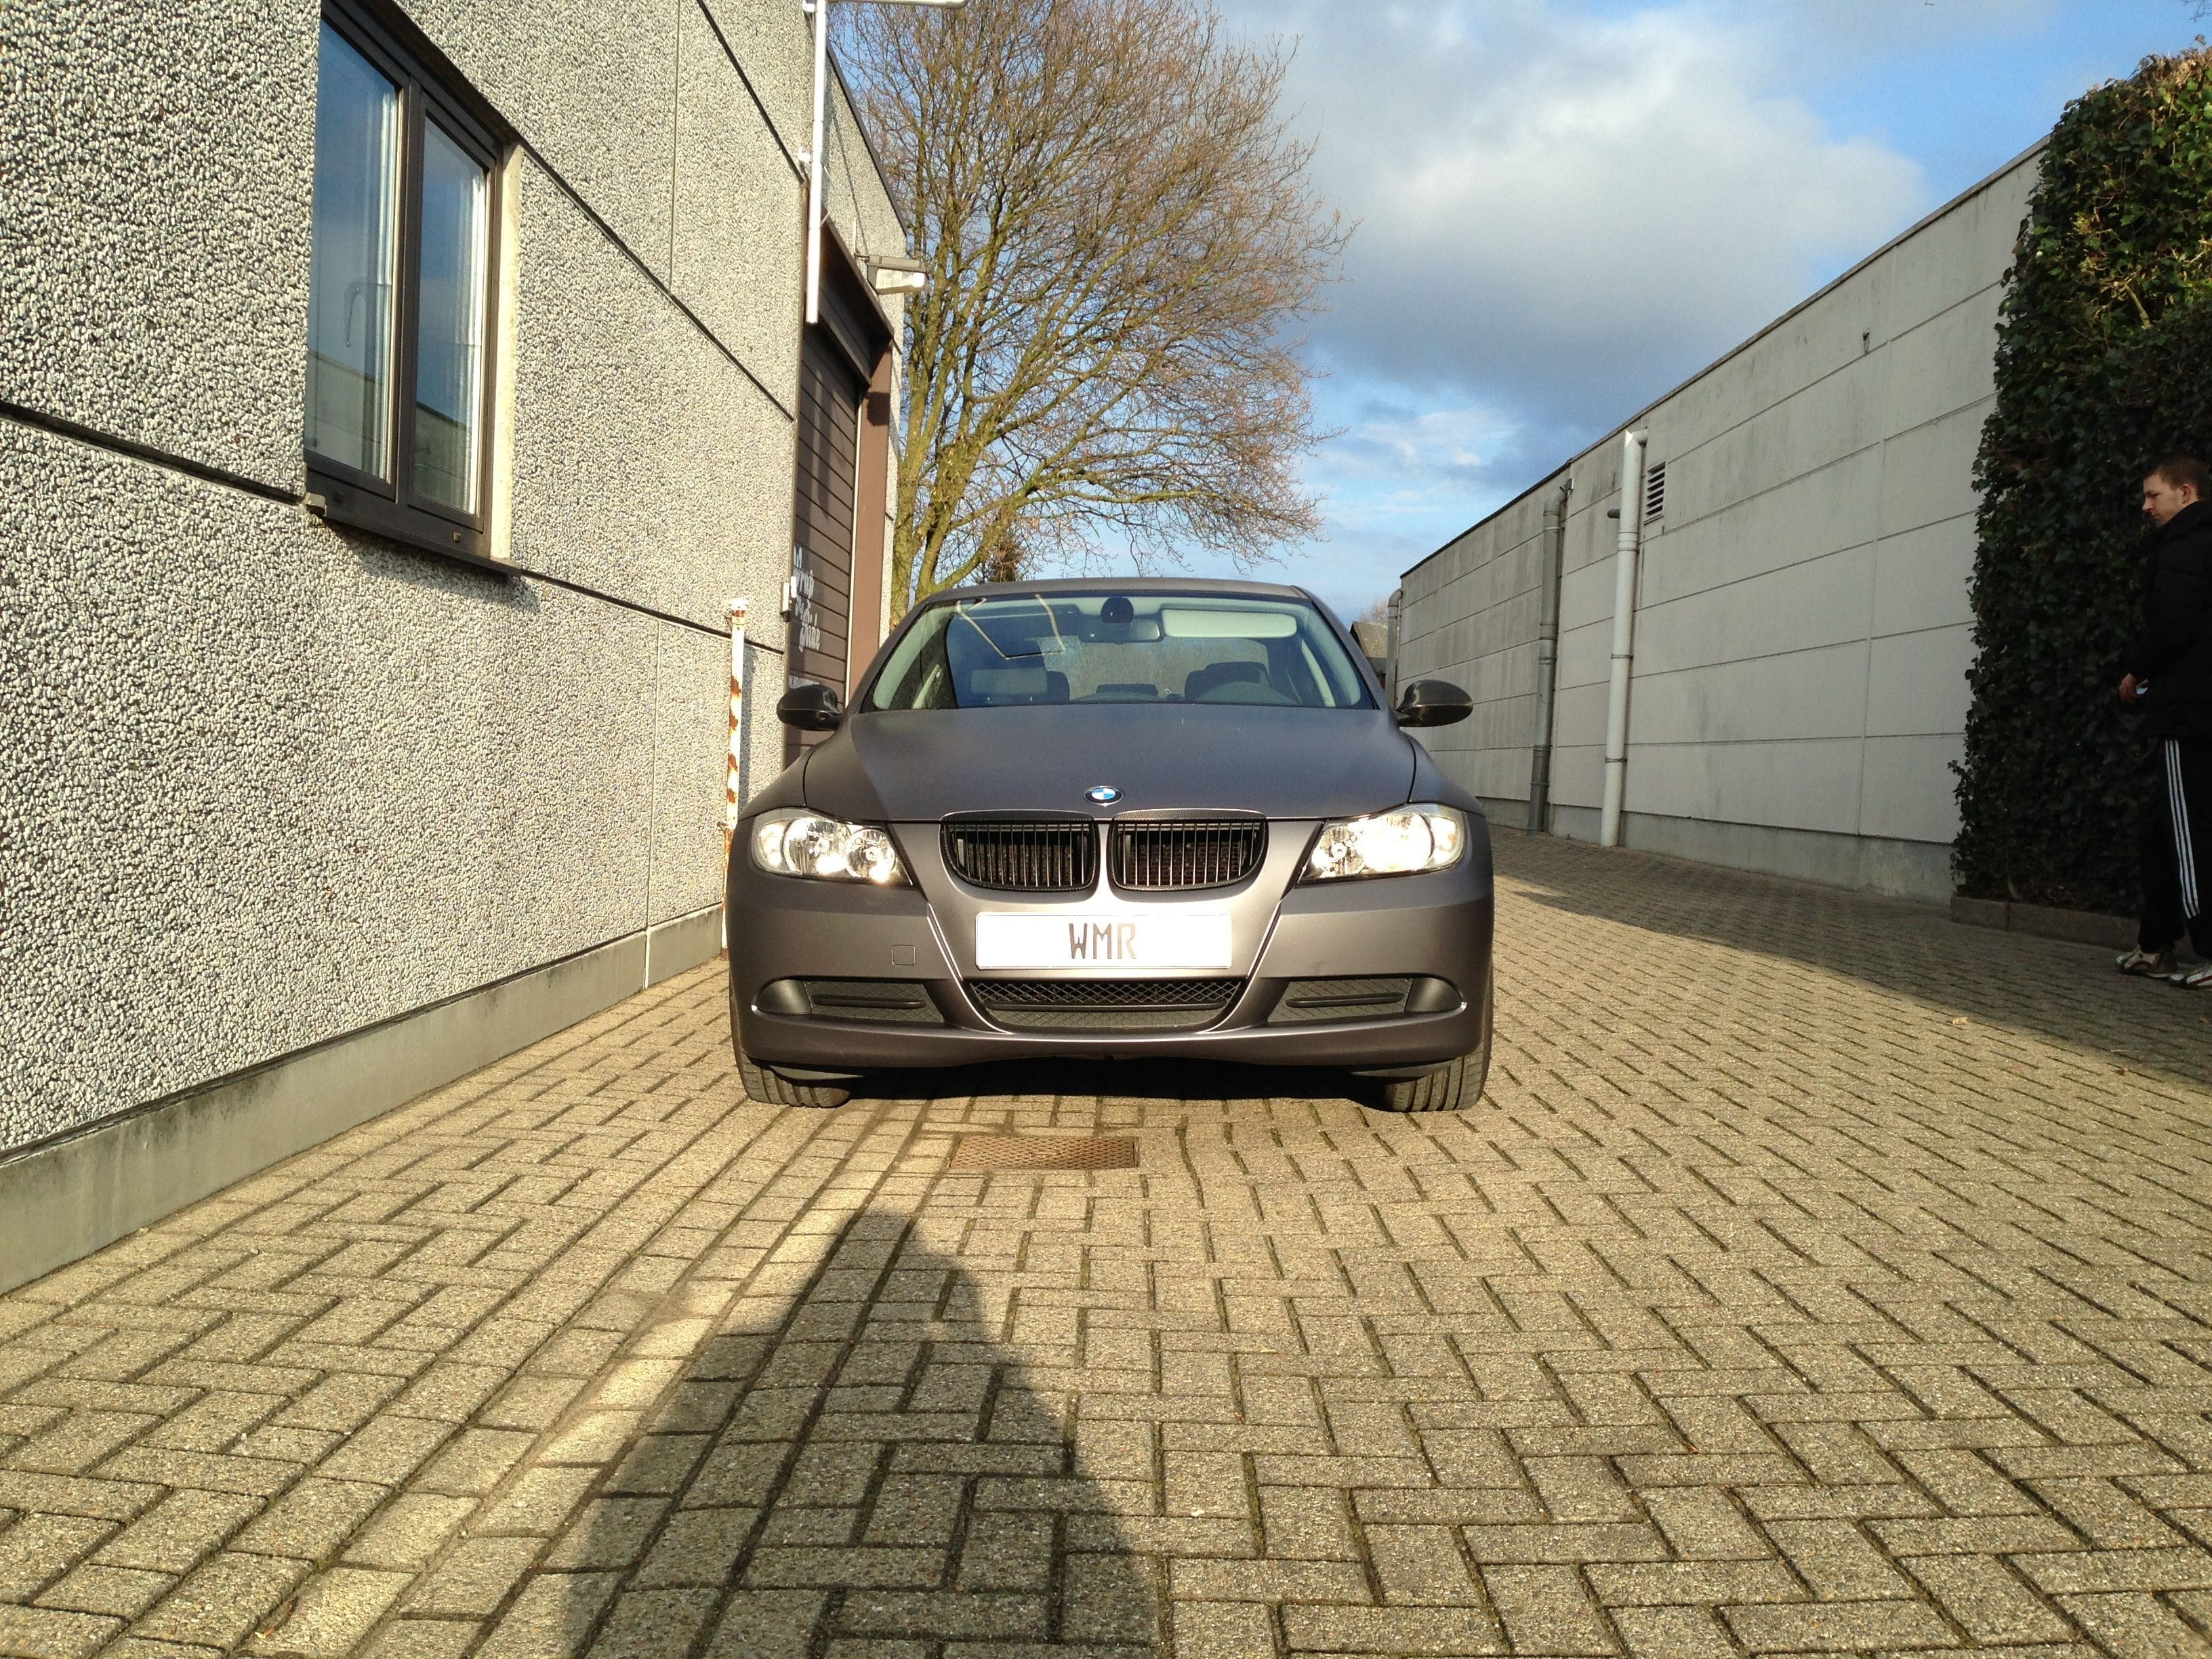 BMW E90 met Gunpowder Wrap, Carwrapping door Wrapmyride.nu Foto-nr:5374, ©2021